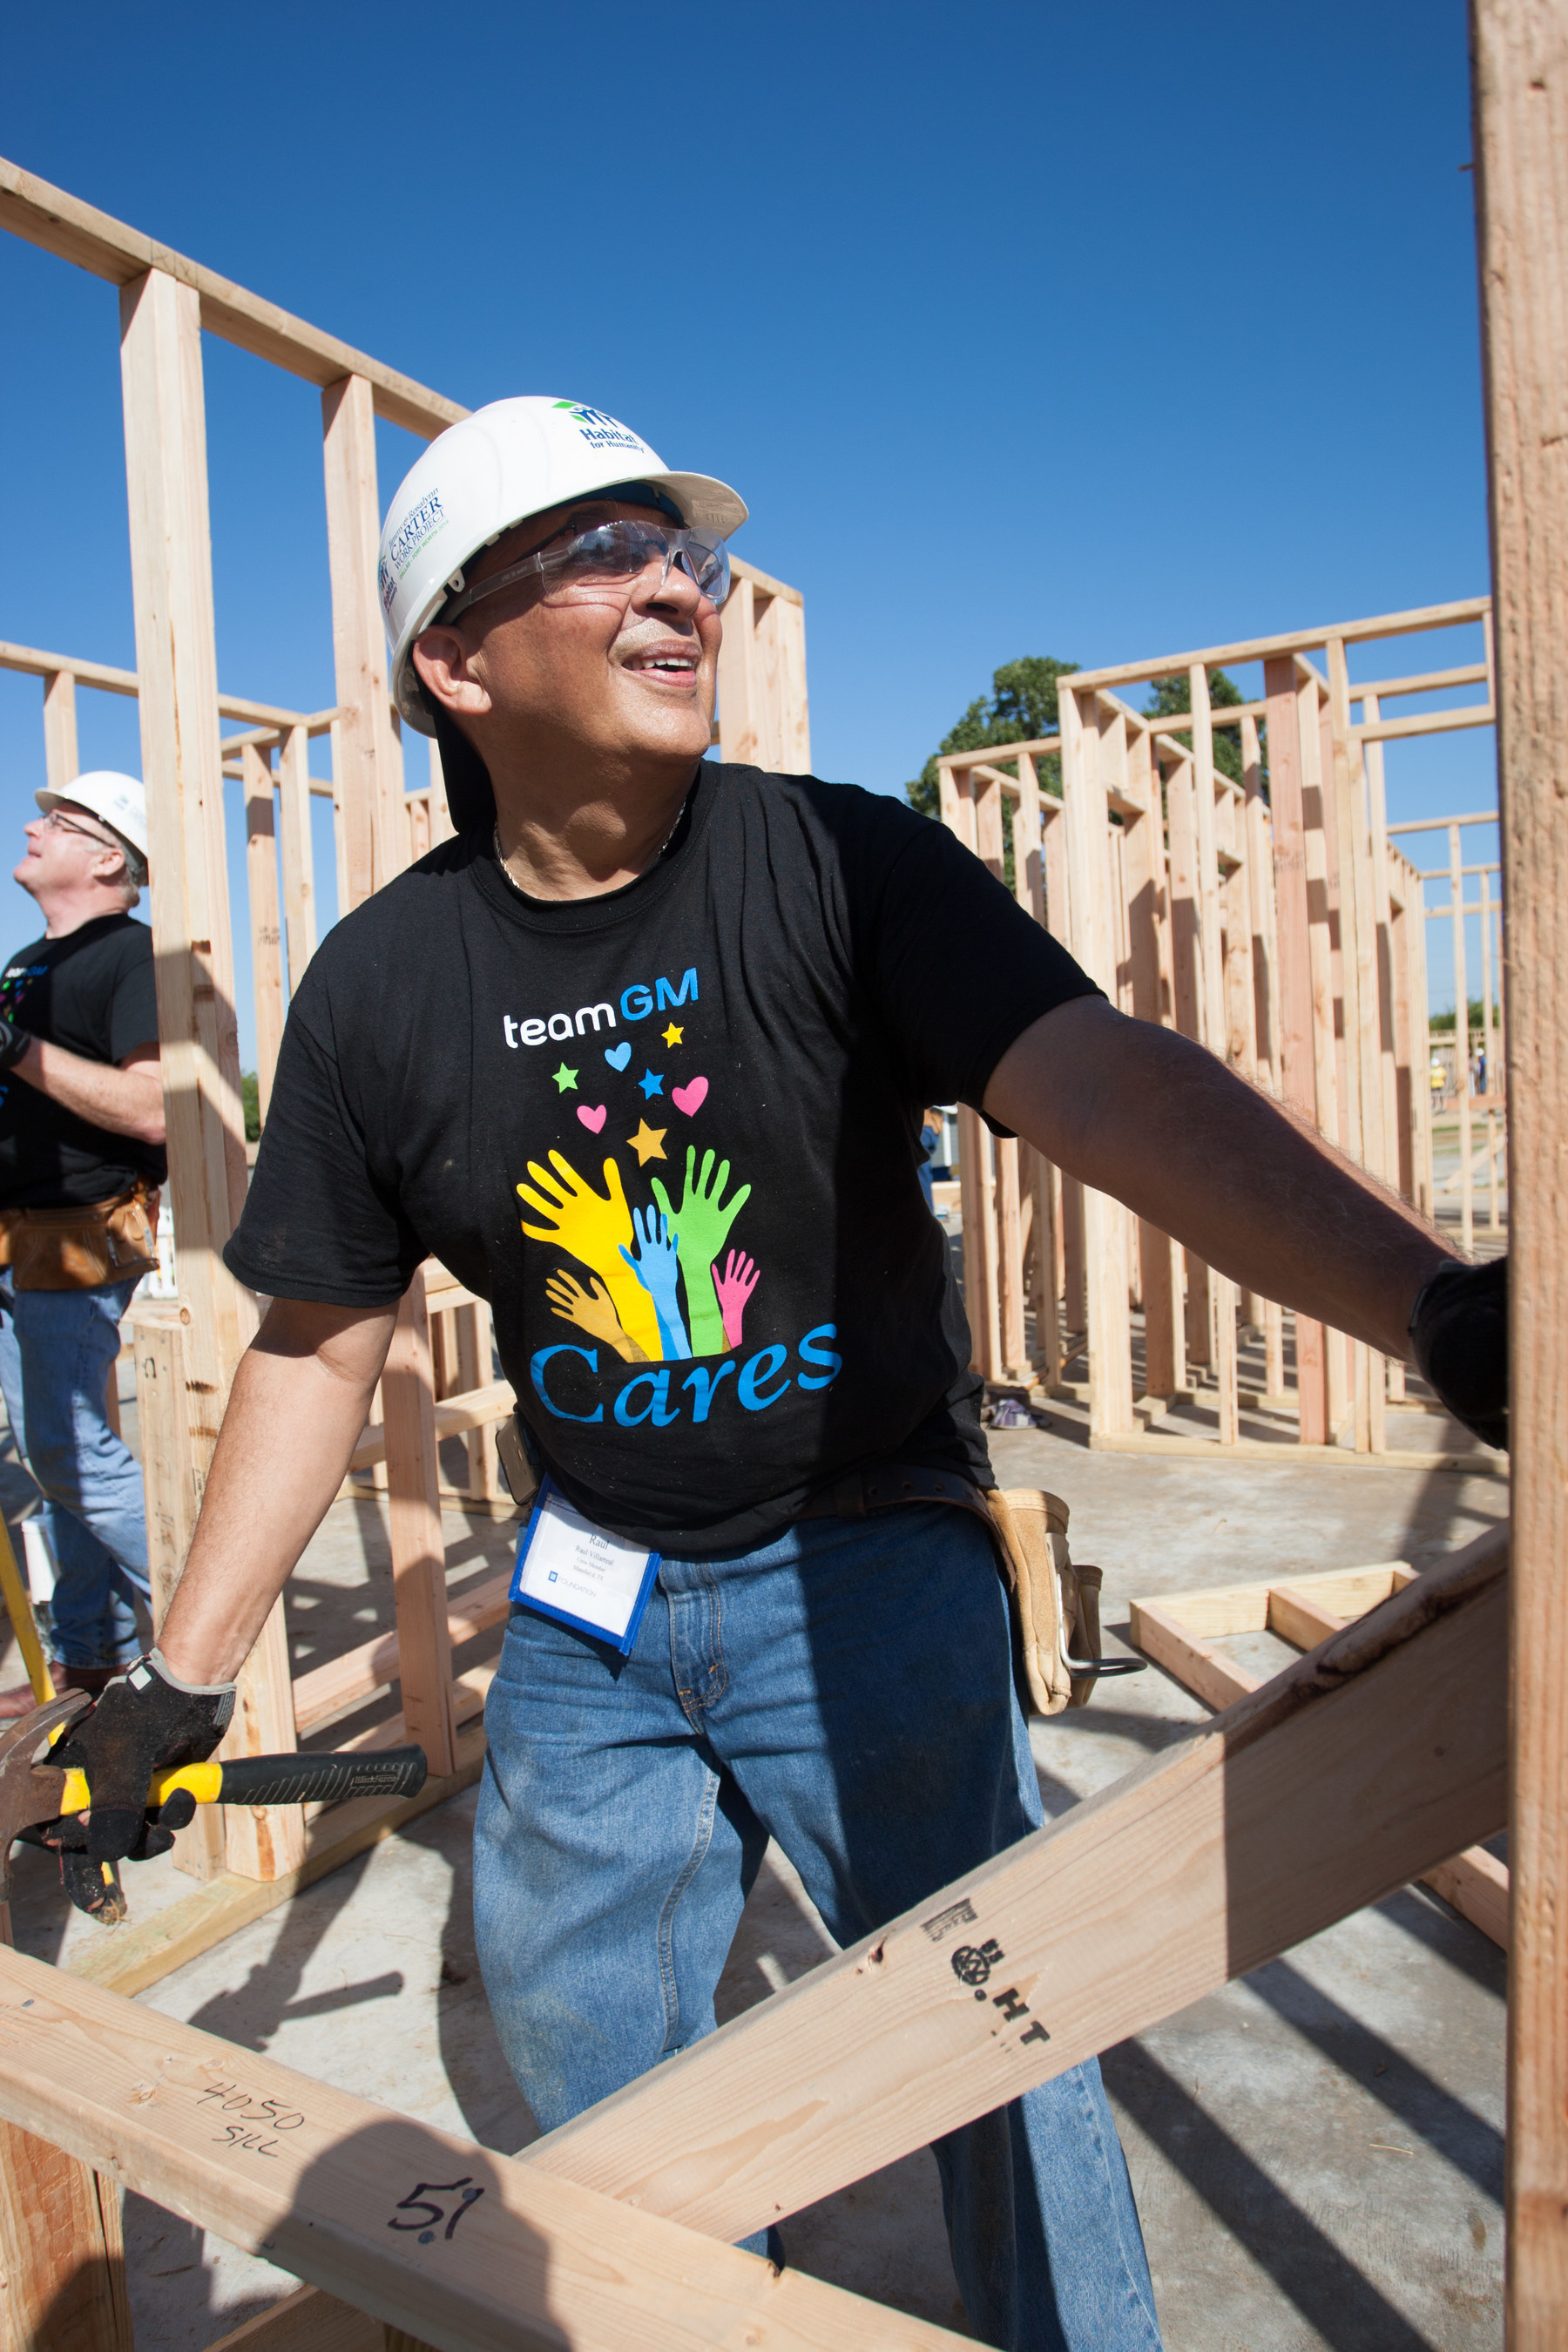 GM Foundation renews its commitment to Habitat for Humanity